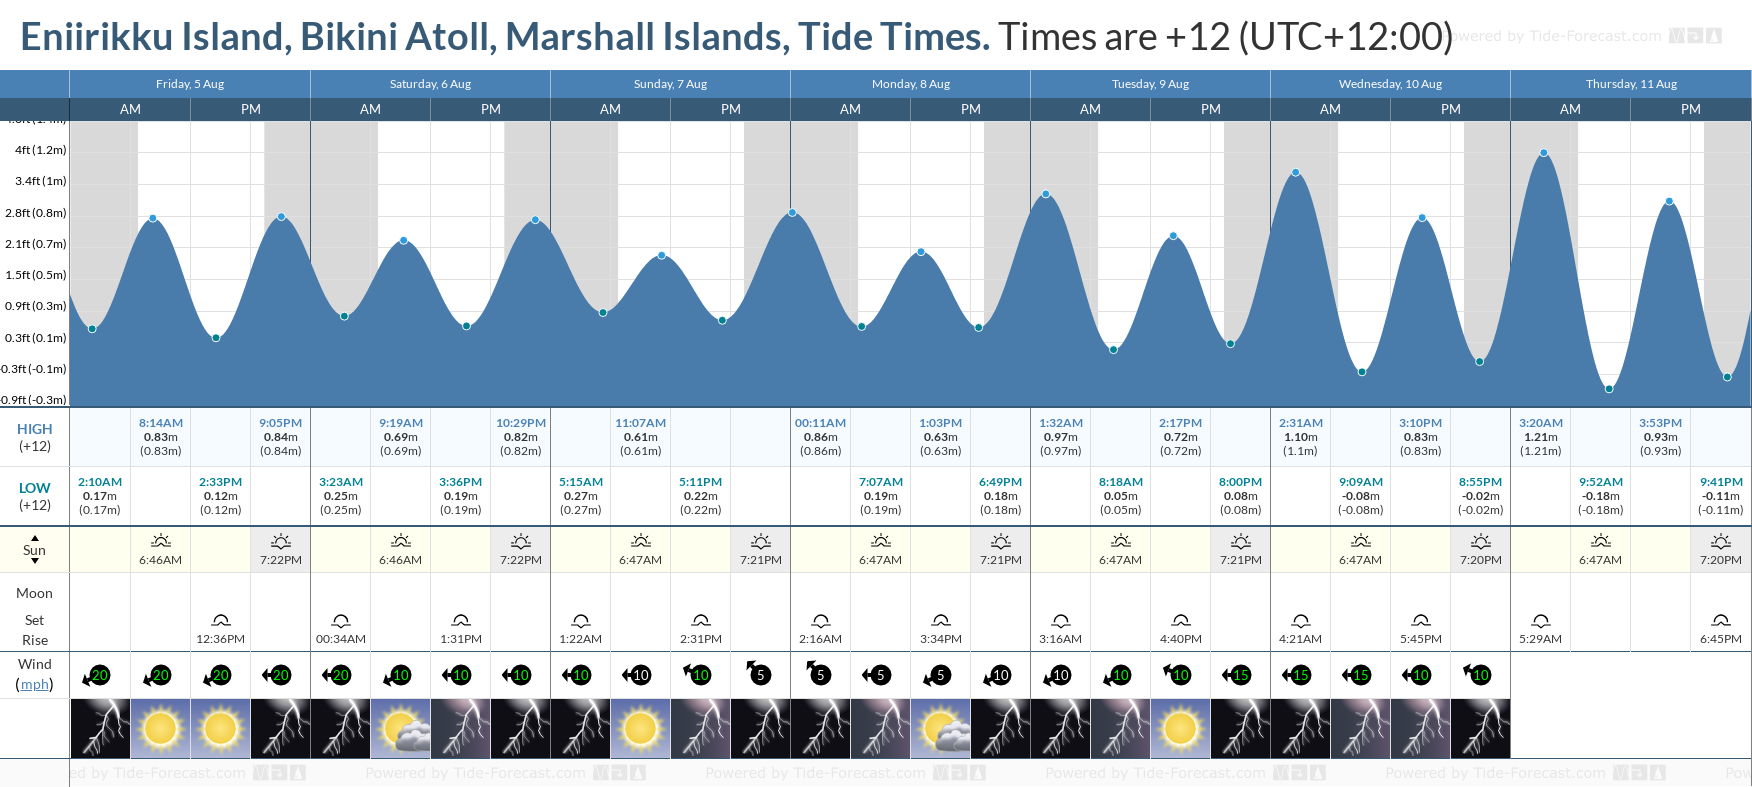 Eniirikku Island, Bikini Atoll, Marshall Islands Tide Chart including high and low tide tide times for the next 7 days